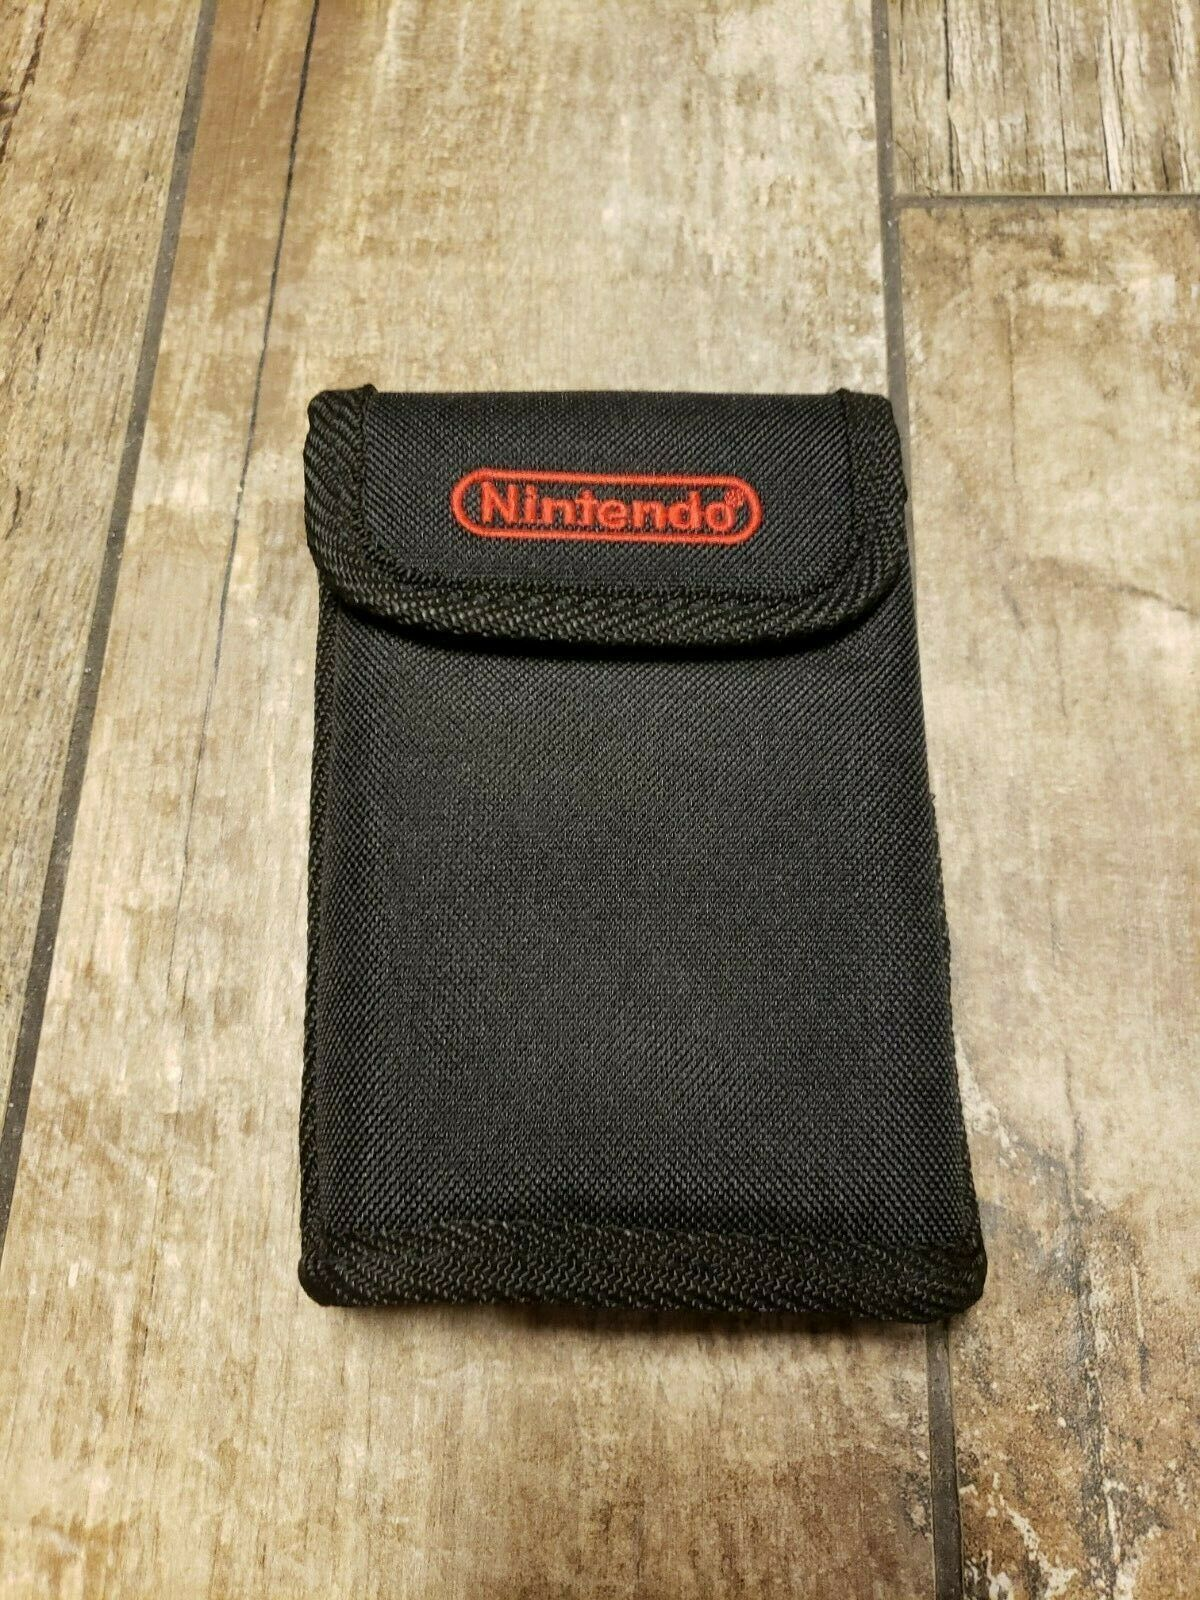 Primary image for Nintendo Case Great Condition Fast Shipping